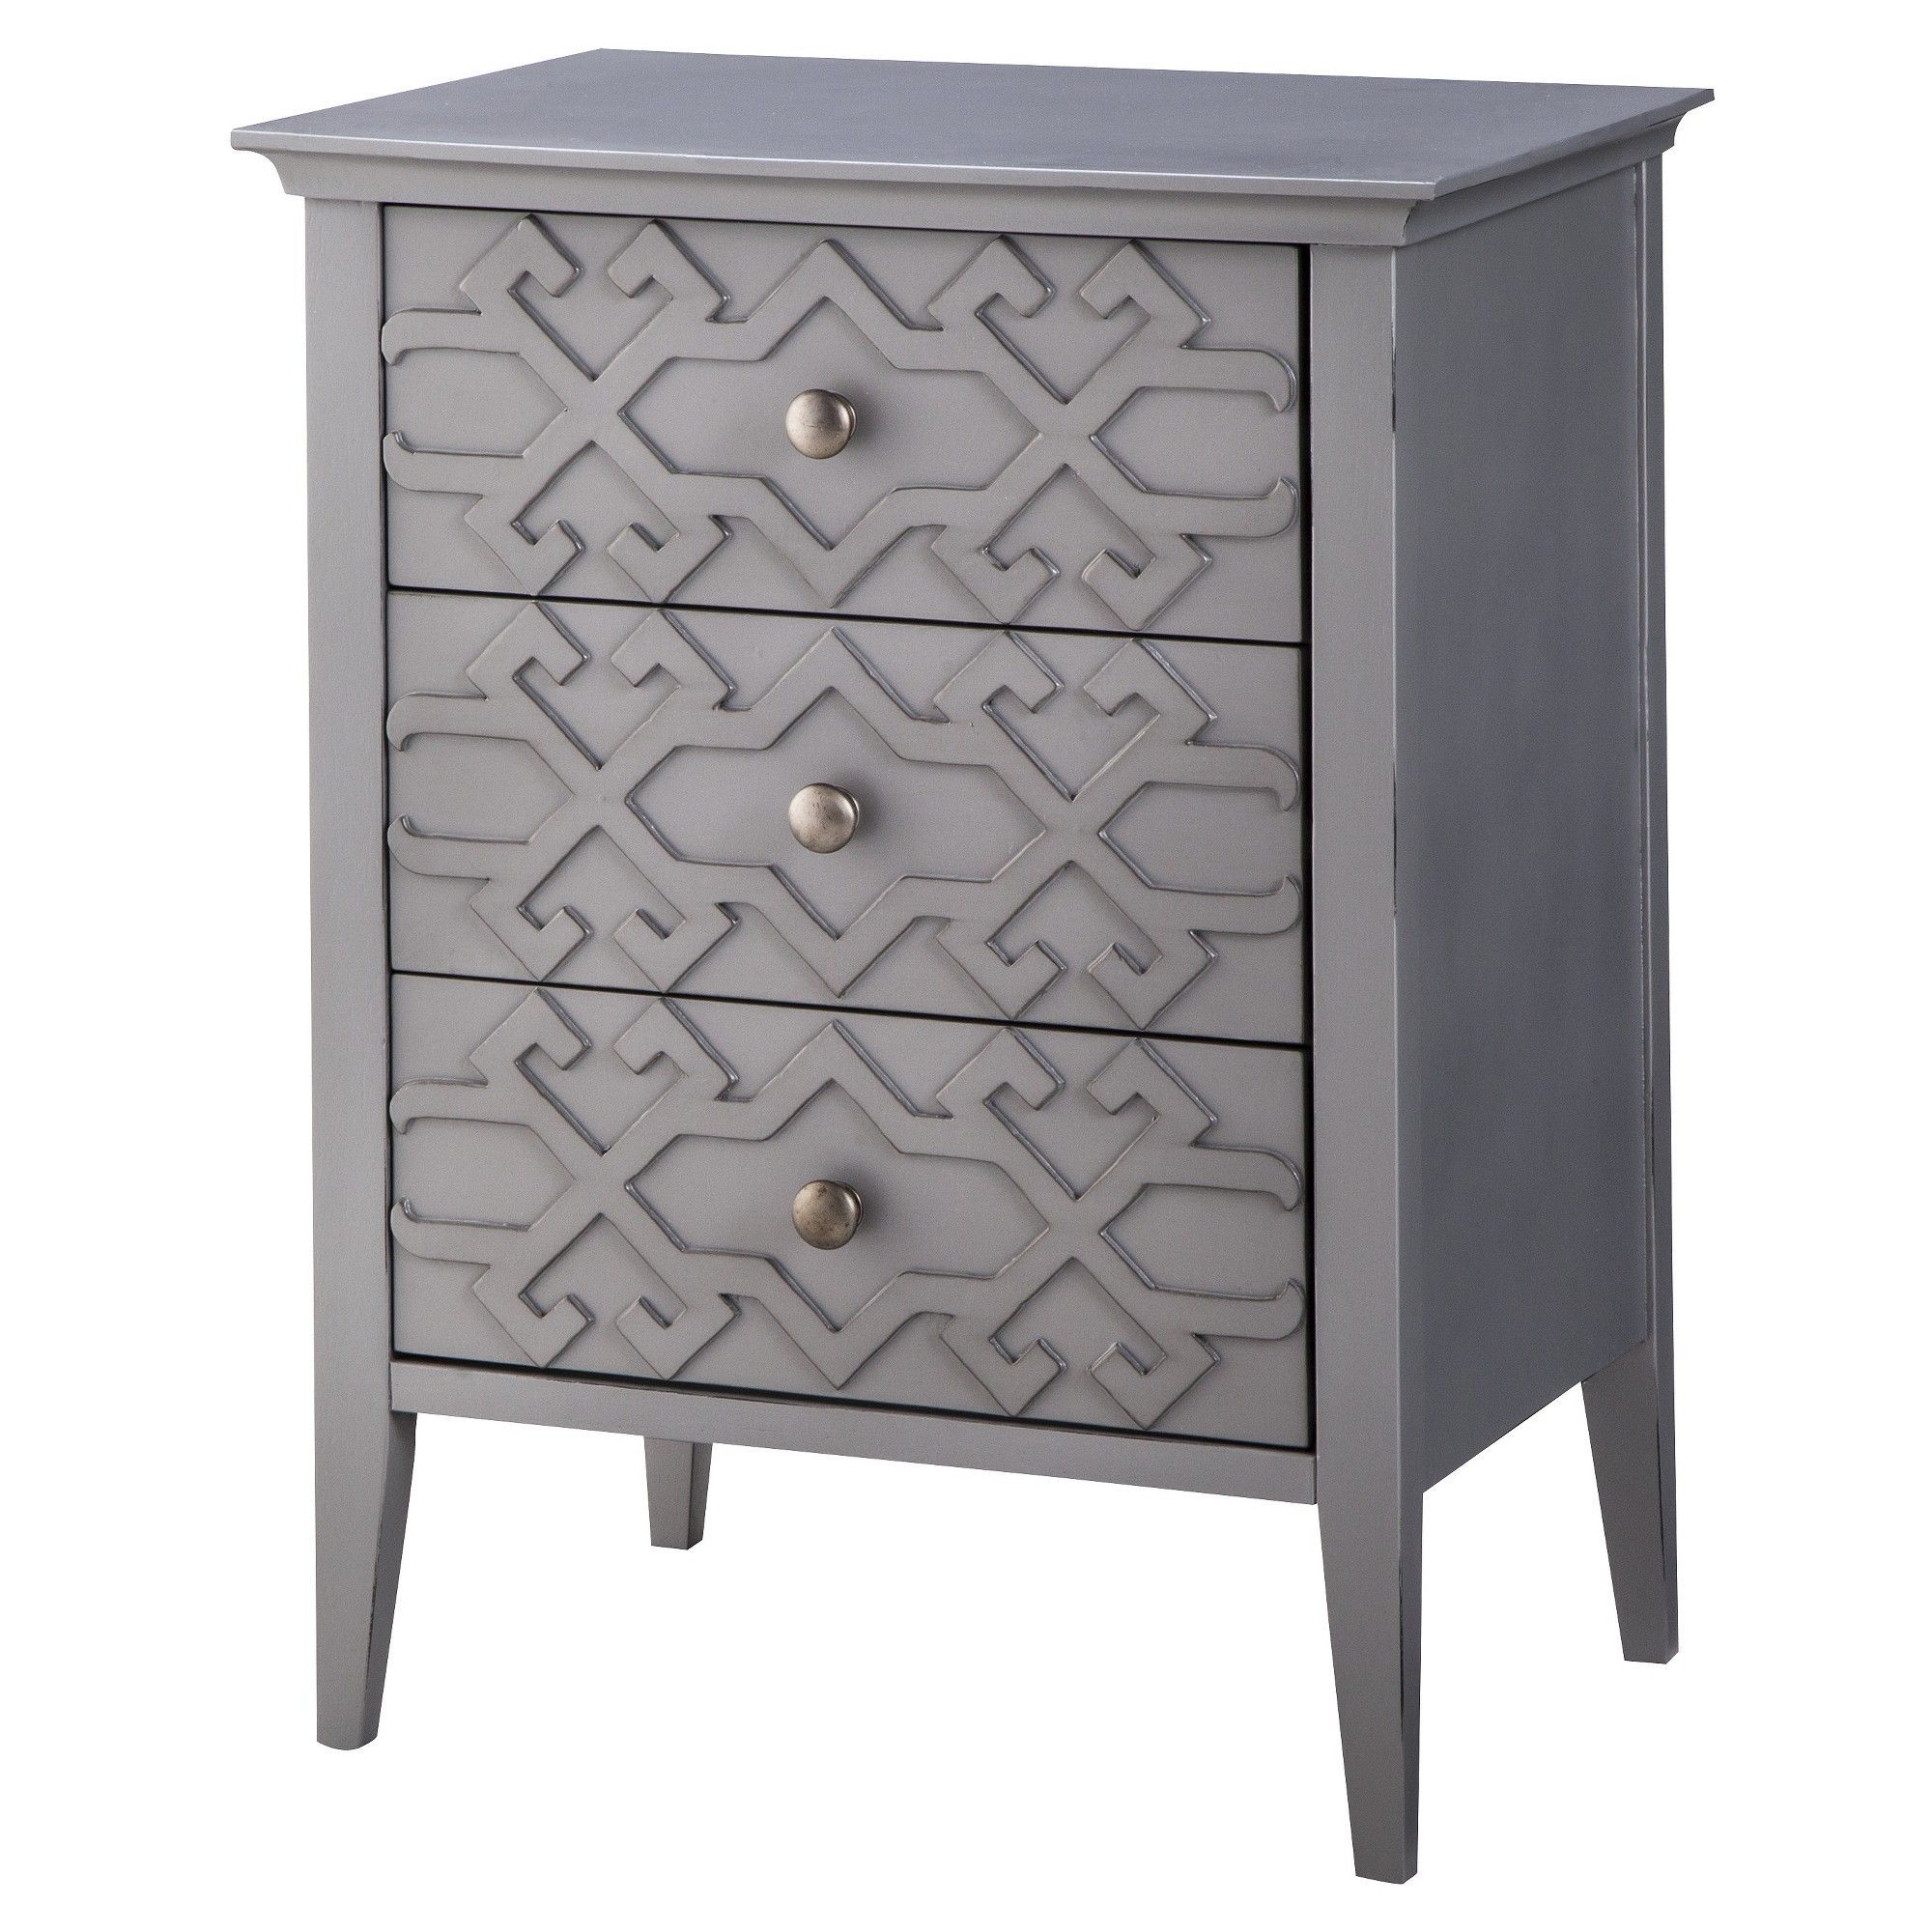 fretwork accent table threshold gray products retro small trestle dining lift top coffee rectangle patio ergonomic furniture fold out best bedroom target end tables white one